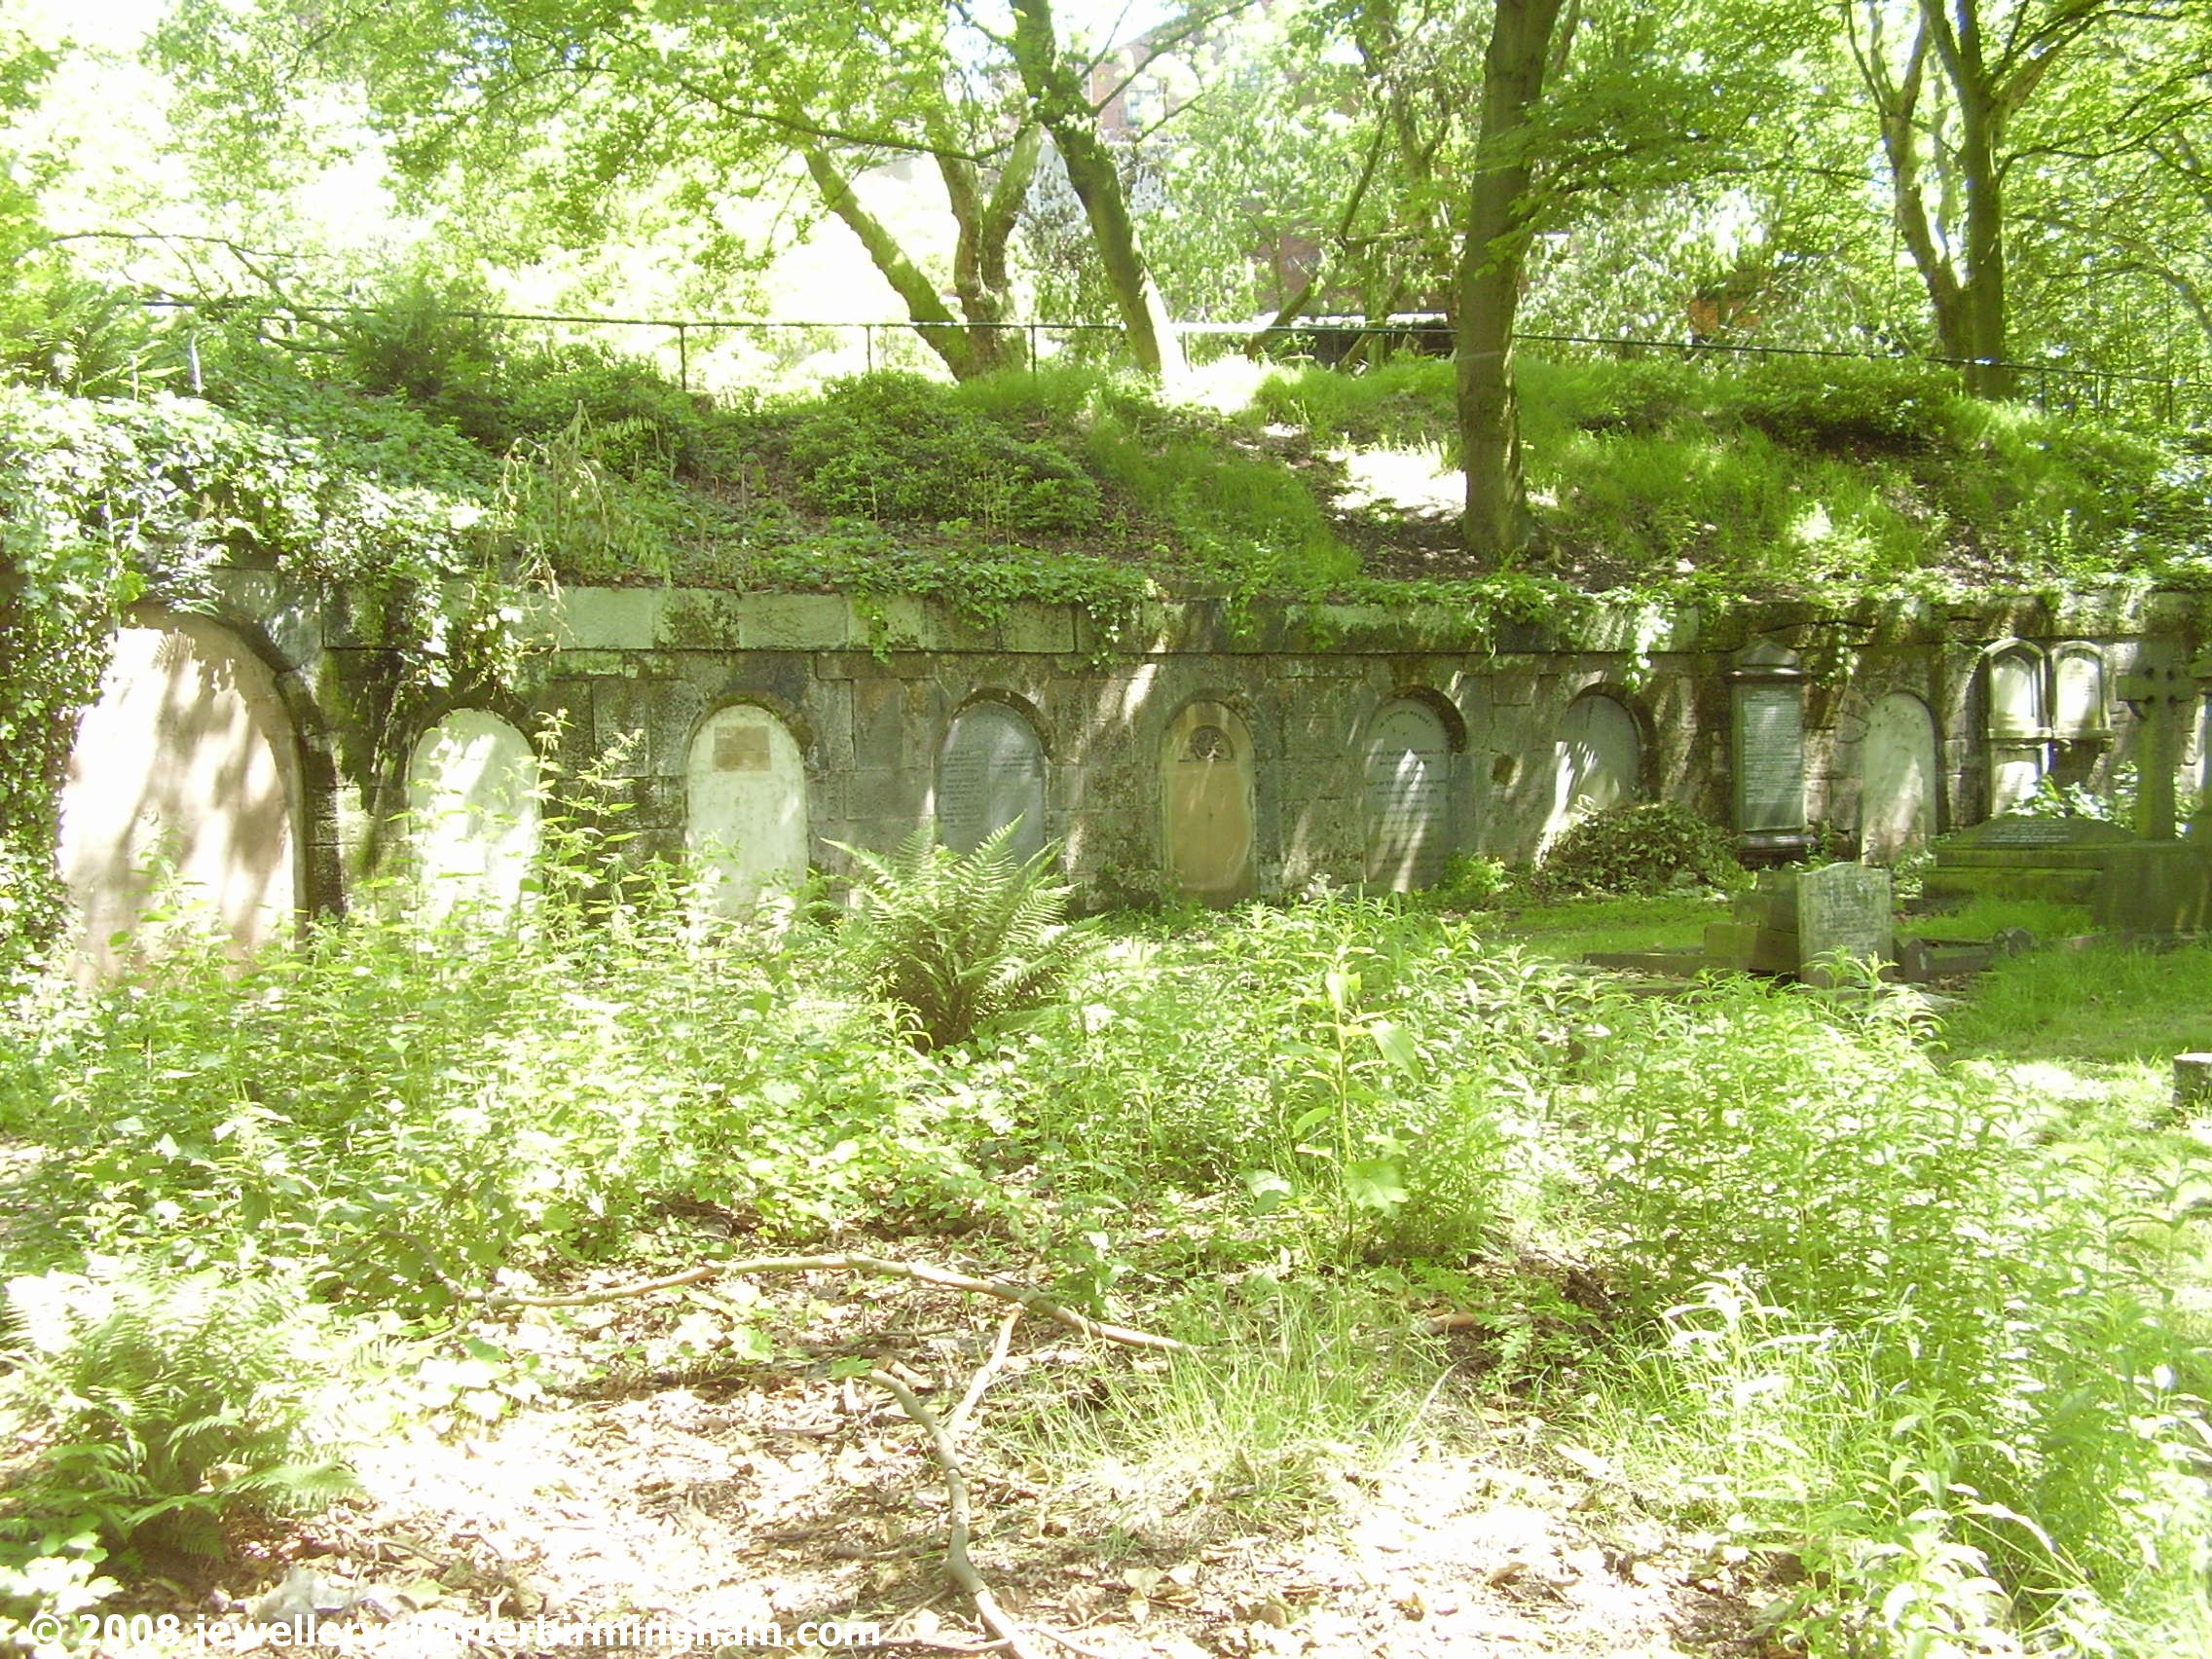 The-Catacombs-in-Key-Hill-Cemetery-shot-at-a-distance.jpg 2008